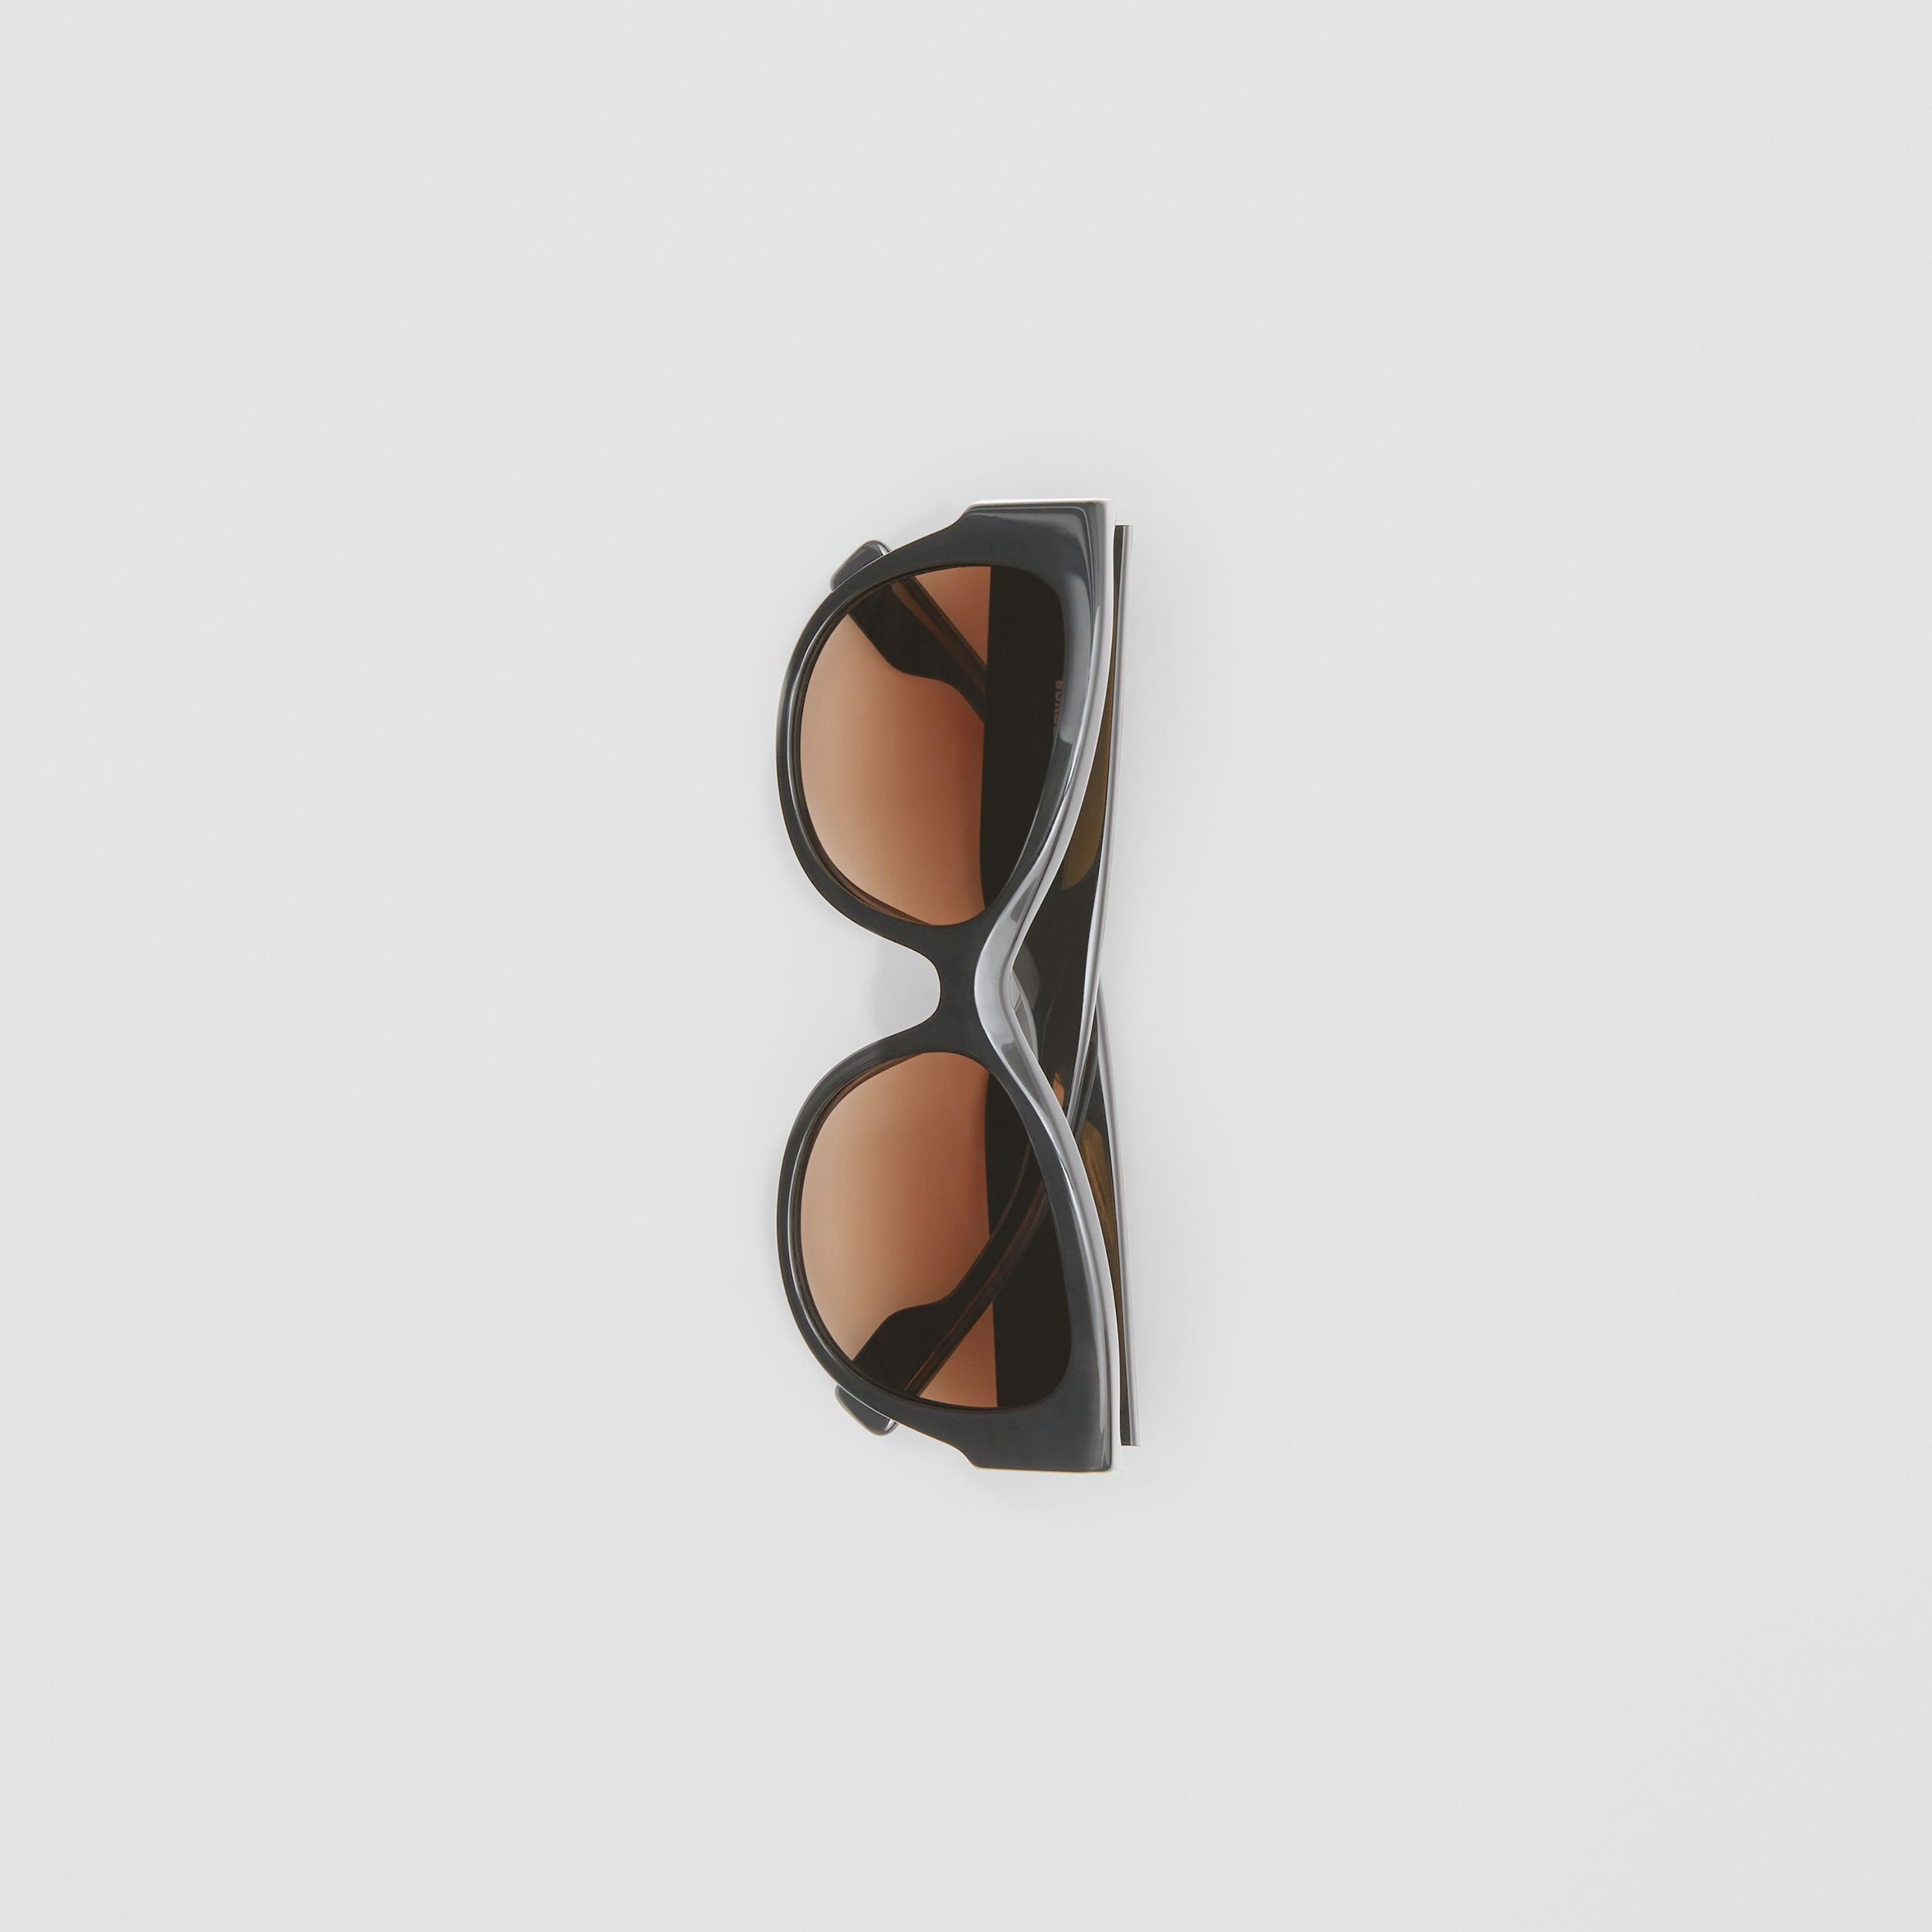 Monogram Detail Butterfly Frame Sunglasses in Black / Beige - Women | Burberry - 3